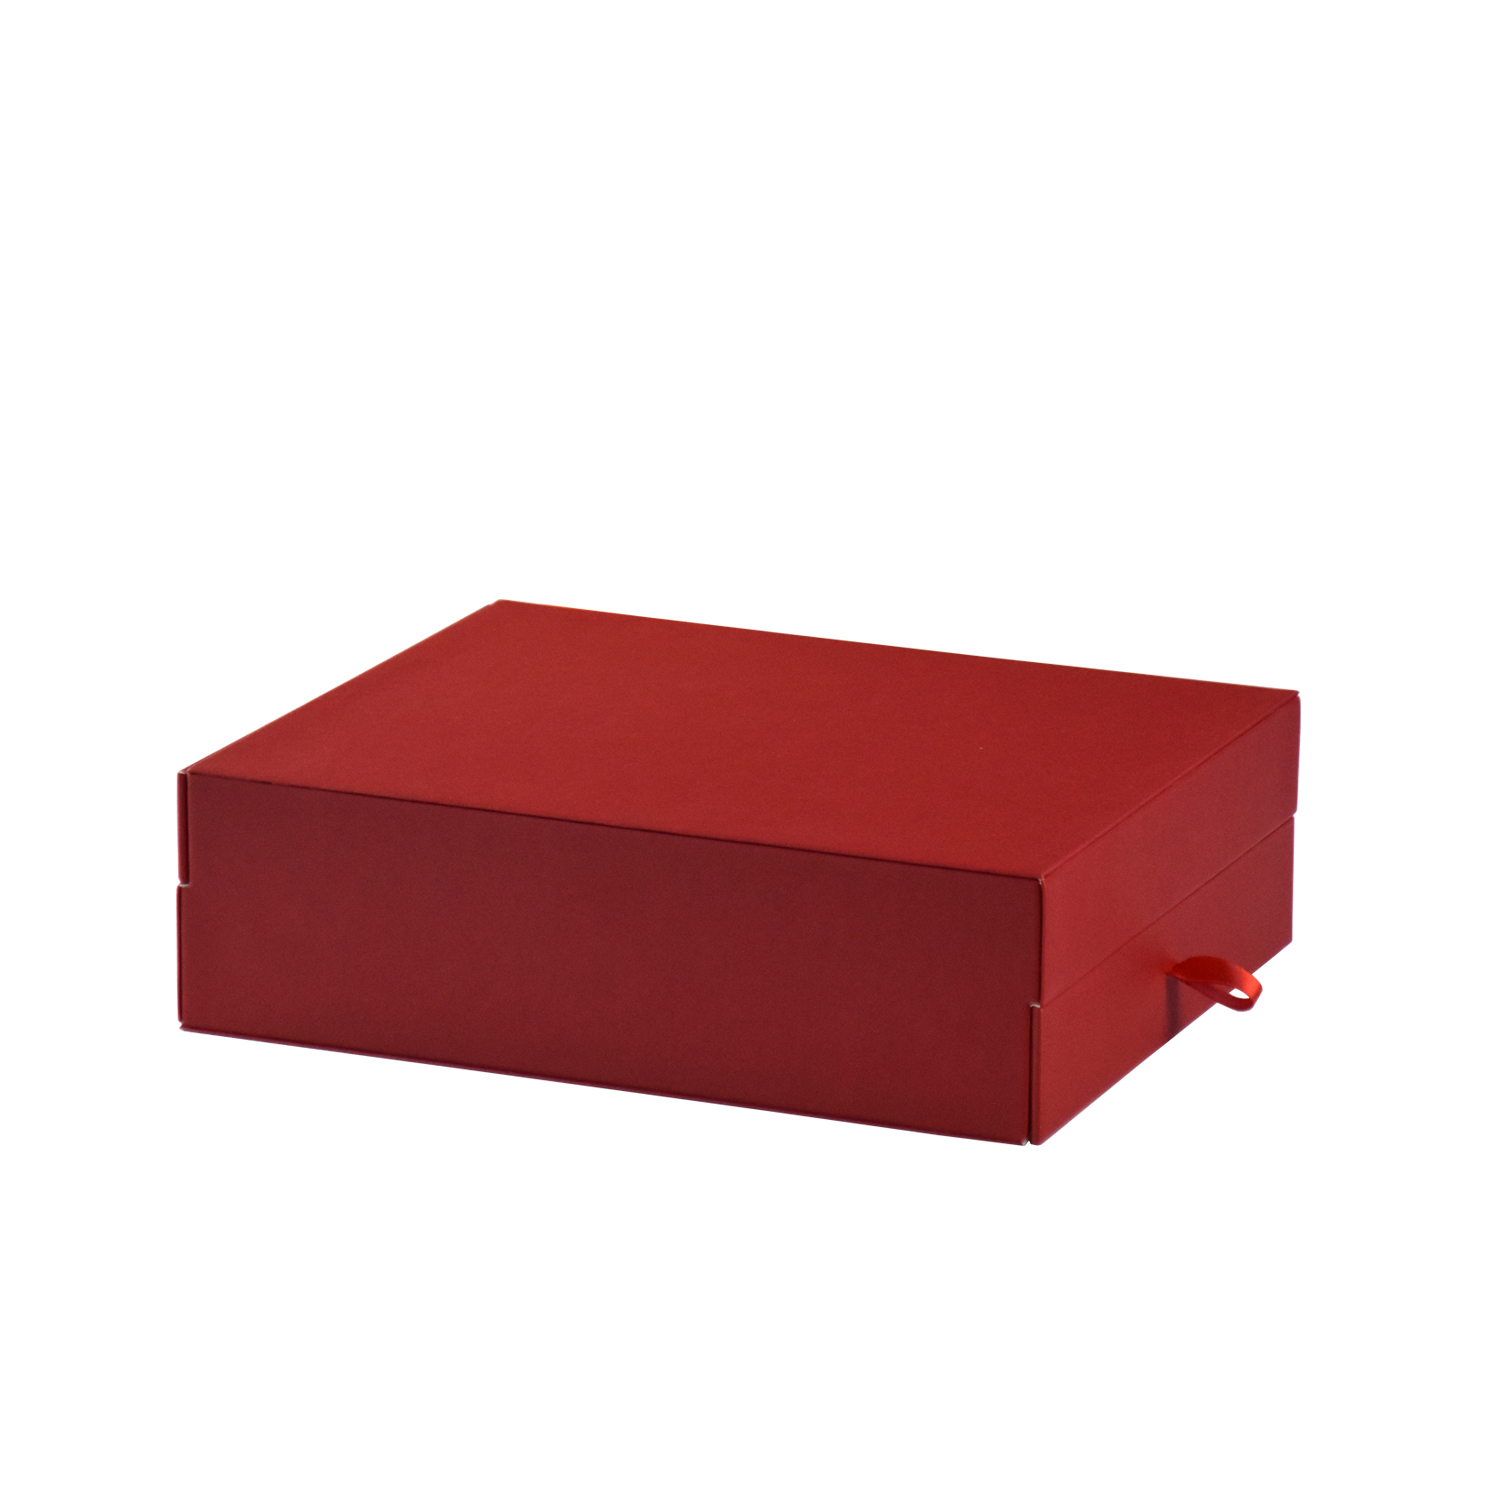 Custom drawout double desktop leather gift packaging box storaging box